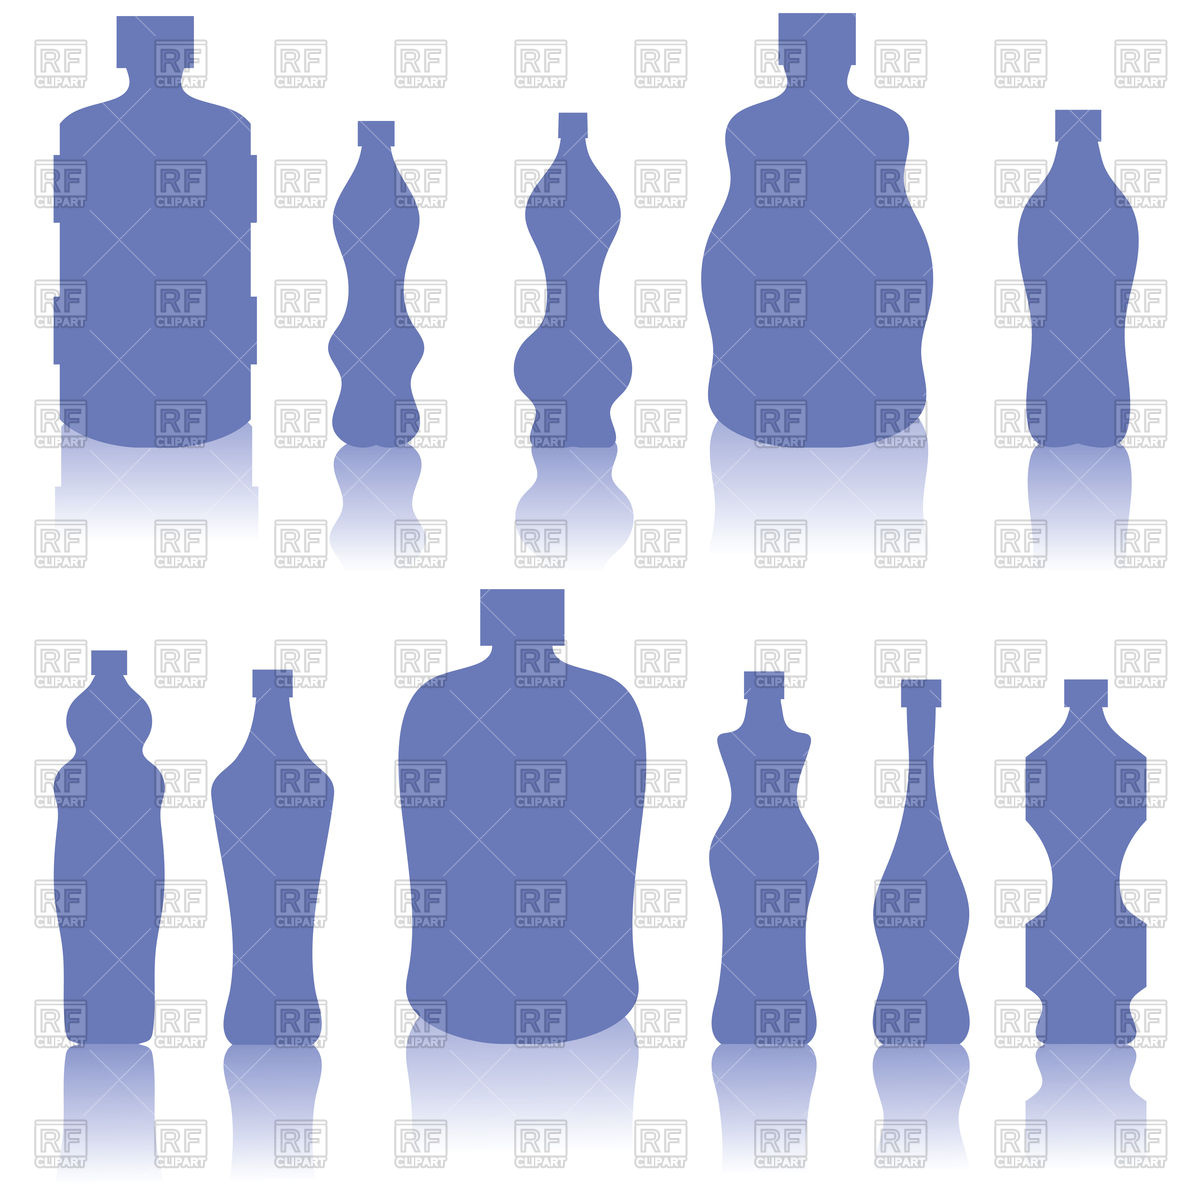 Set of blue bottles silhouettes Vector Image #101080.